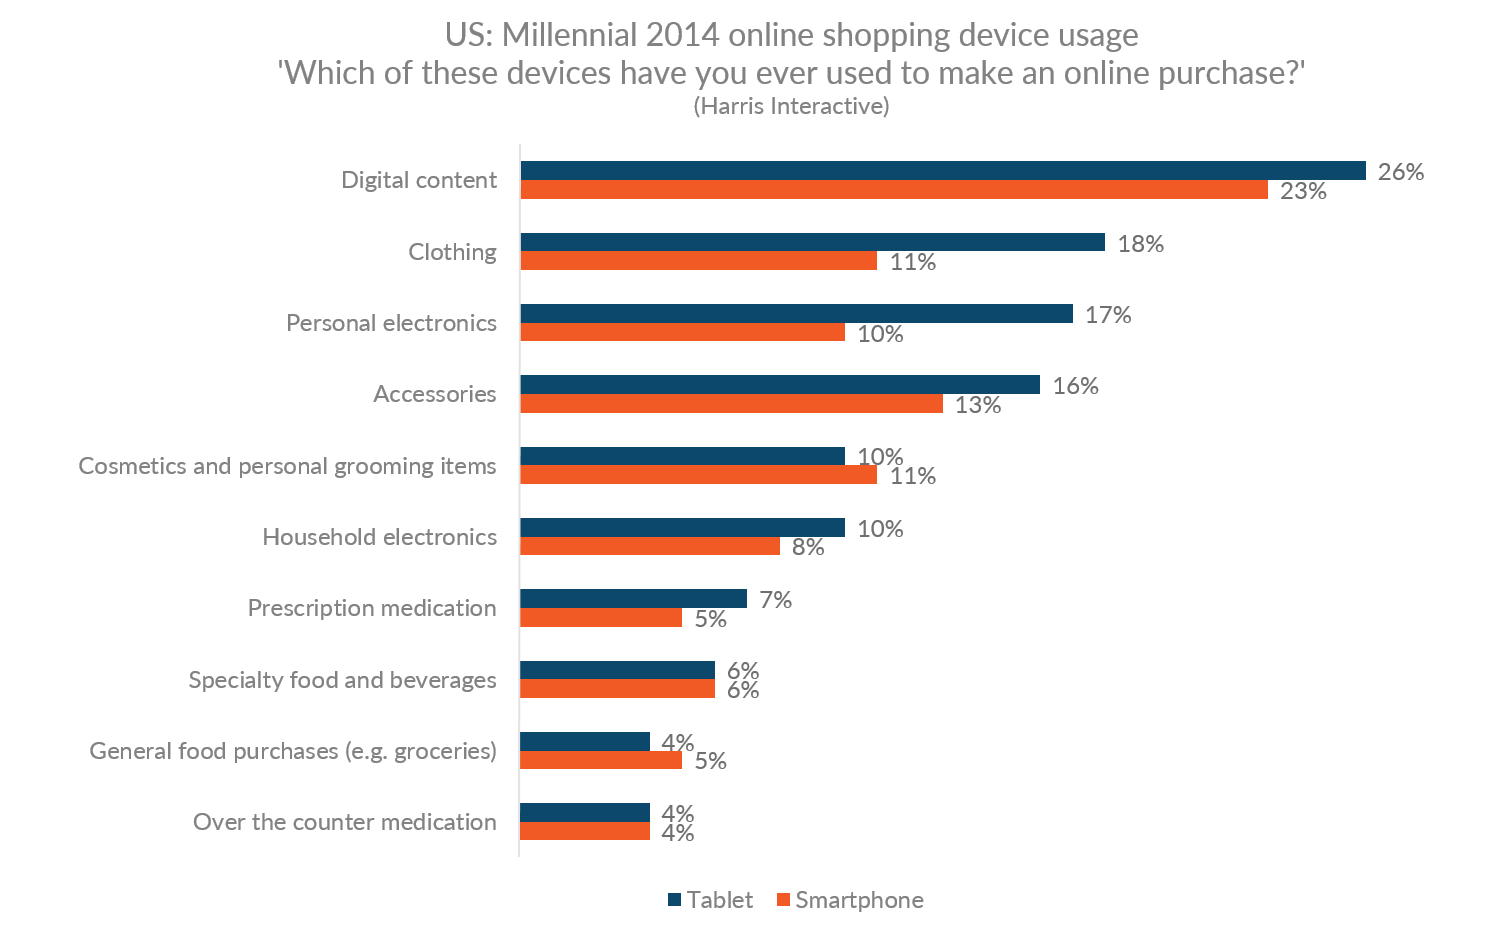 Graph showing the rate for online purchases by device in product categories in the US for Millennials